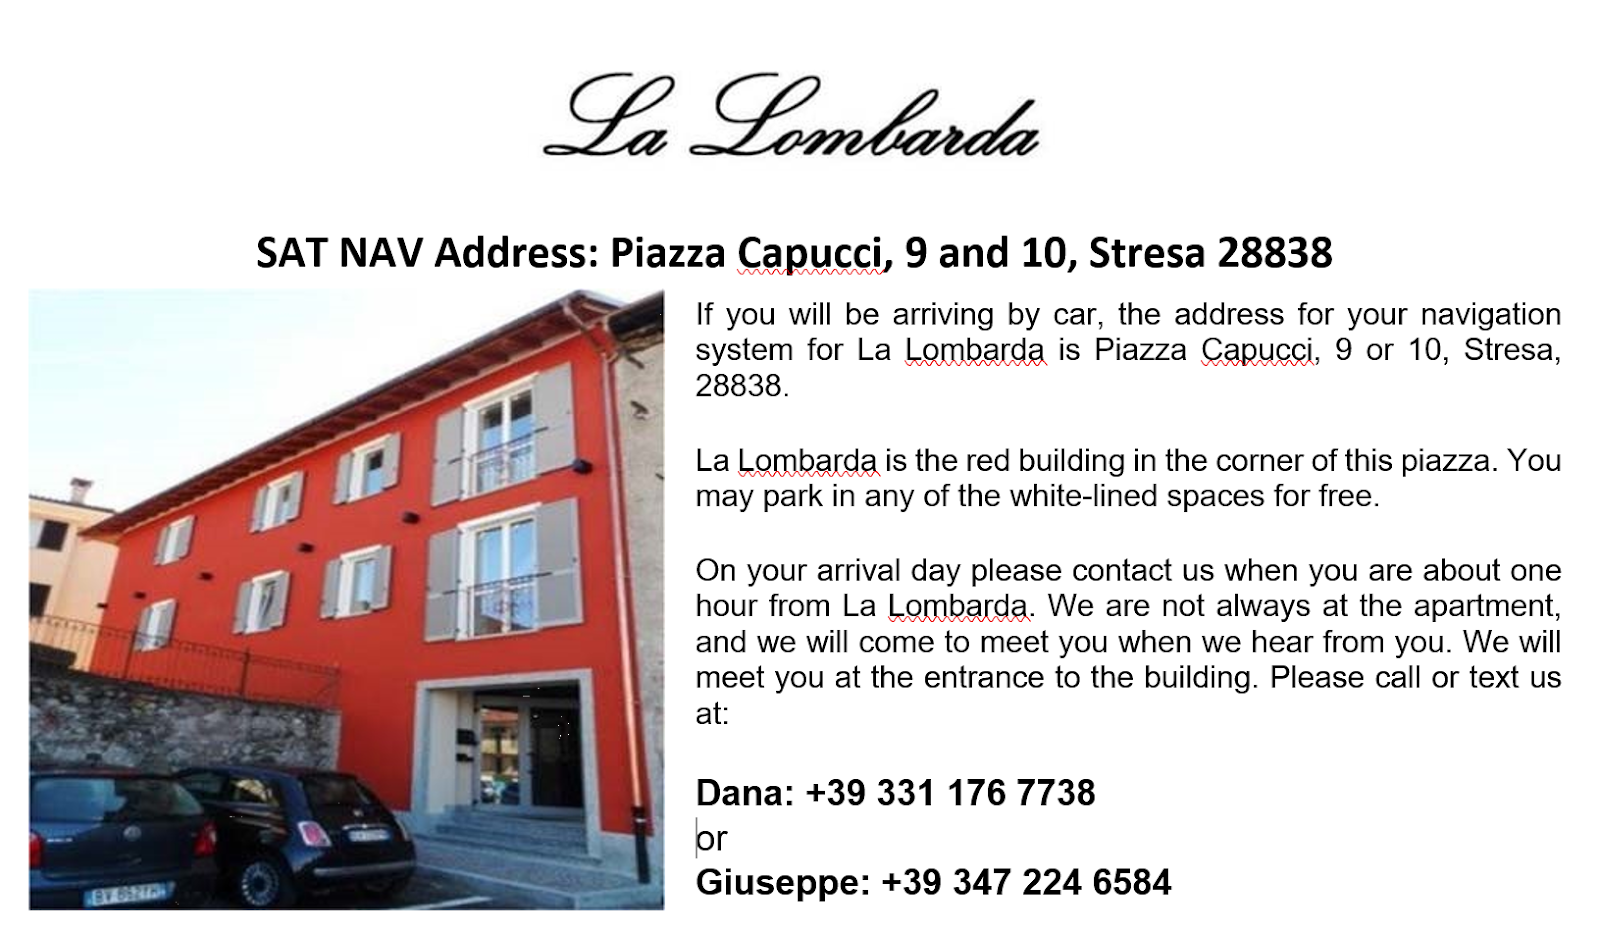 La Lombarda Apartments Are About A 15 Minute Walk From The Train Station  (Stazione F.S. On The Map). If You Are Using The Alibus Shuttle, La  Lombarda Is A ...